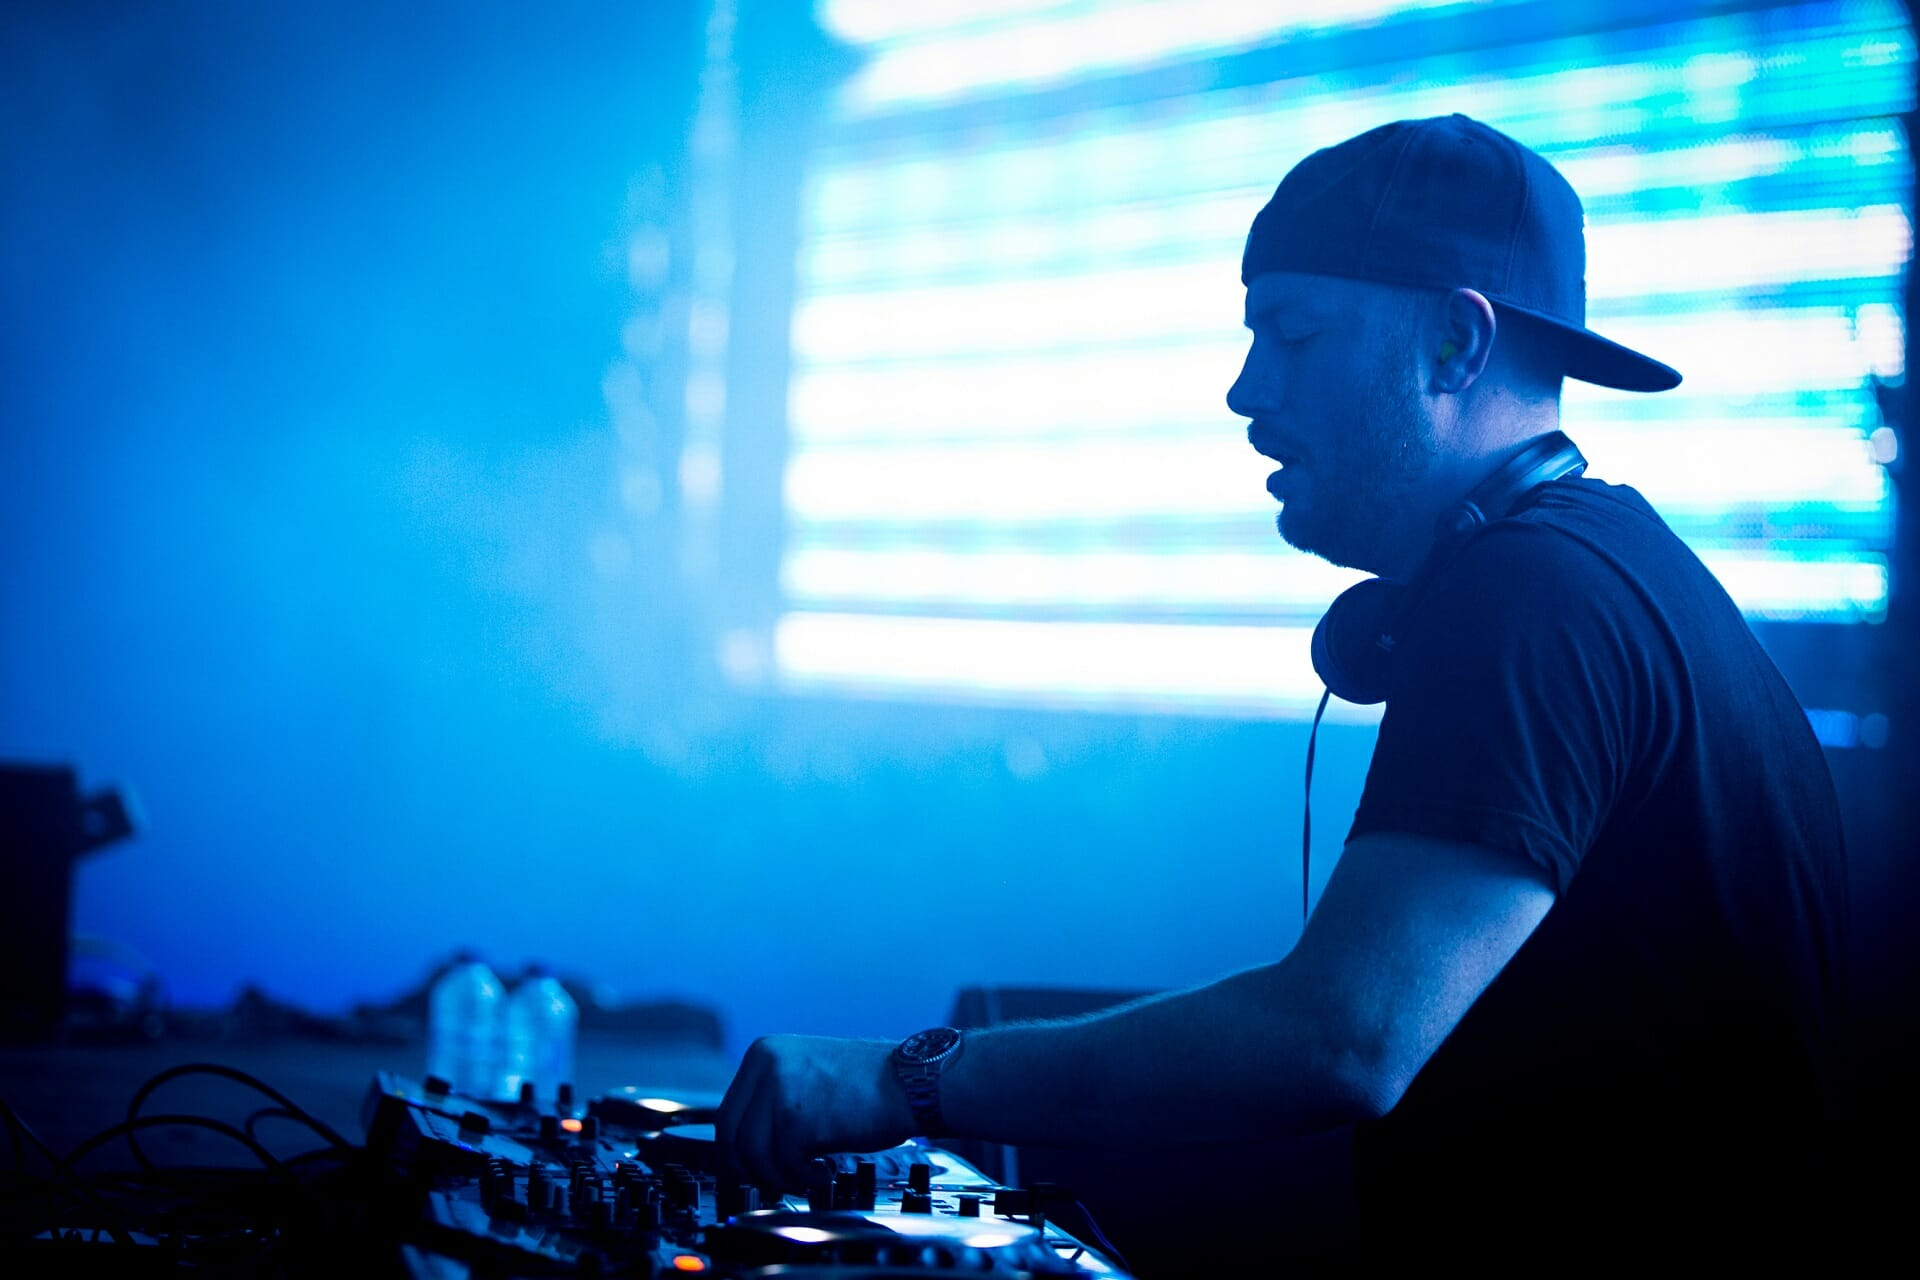 15 years of Pryda: Eric Prydz shares expansive second edition of Pryda 15 EP seriesPryda